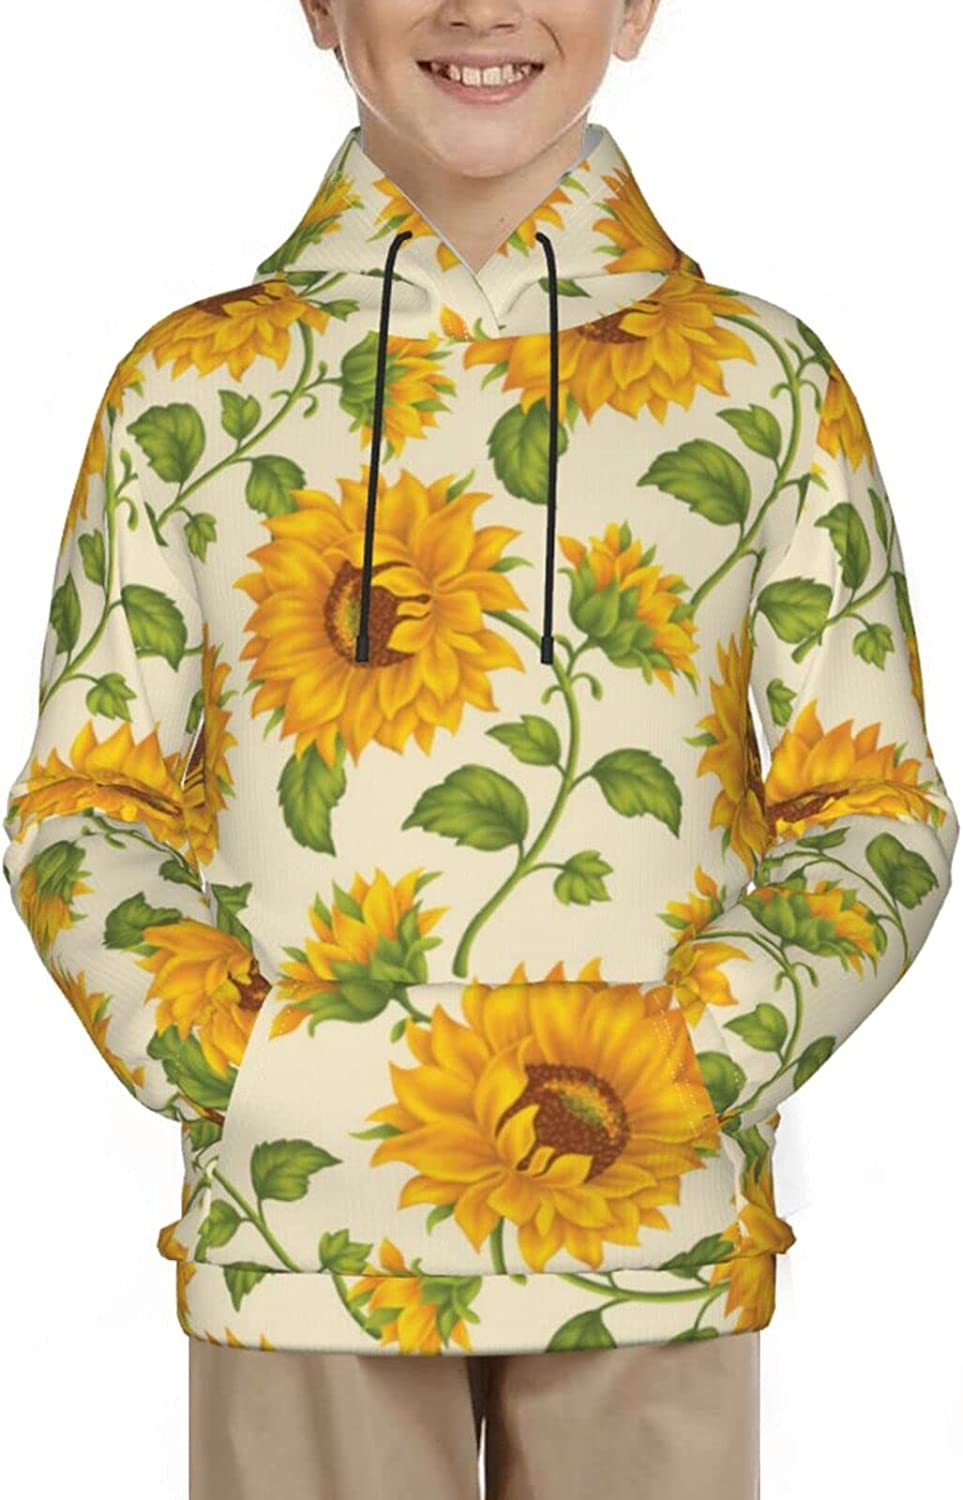 Sunflowers Hoodies, Fashion 3D Print Sweatshirts, with Pocket Long Sleeves Pullover, for Boys Girls